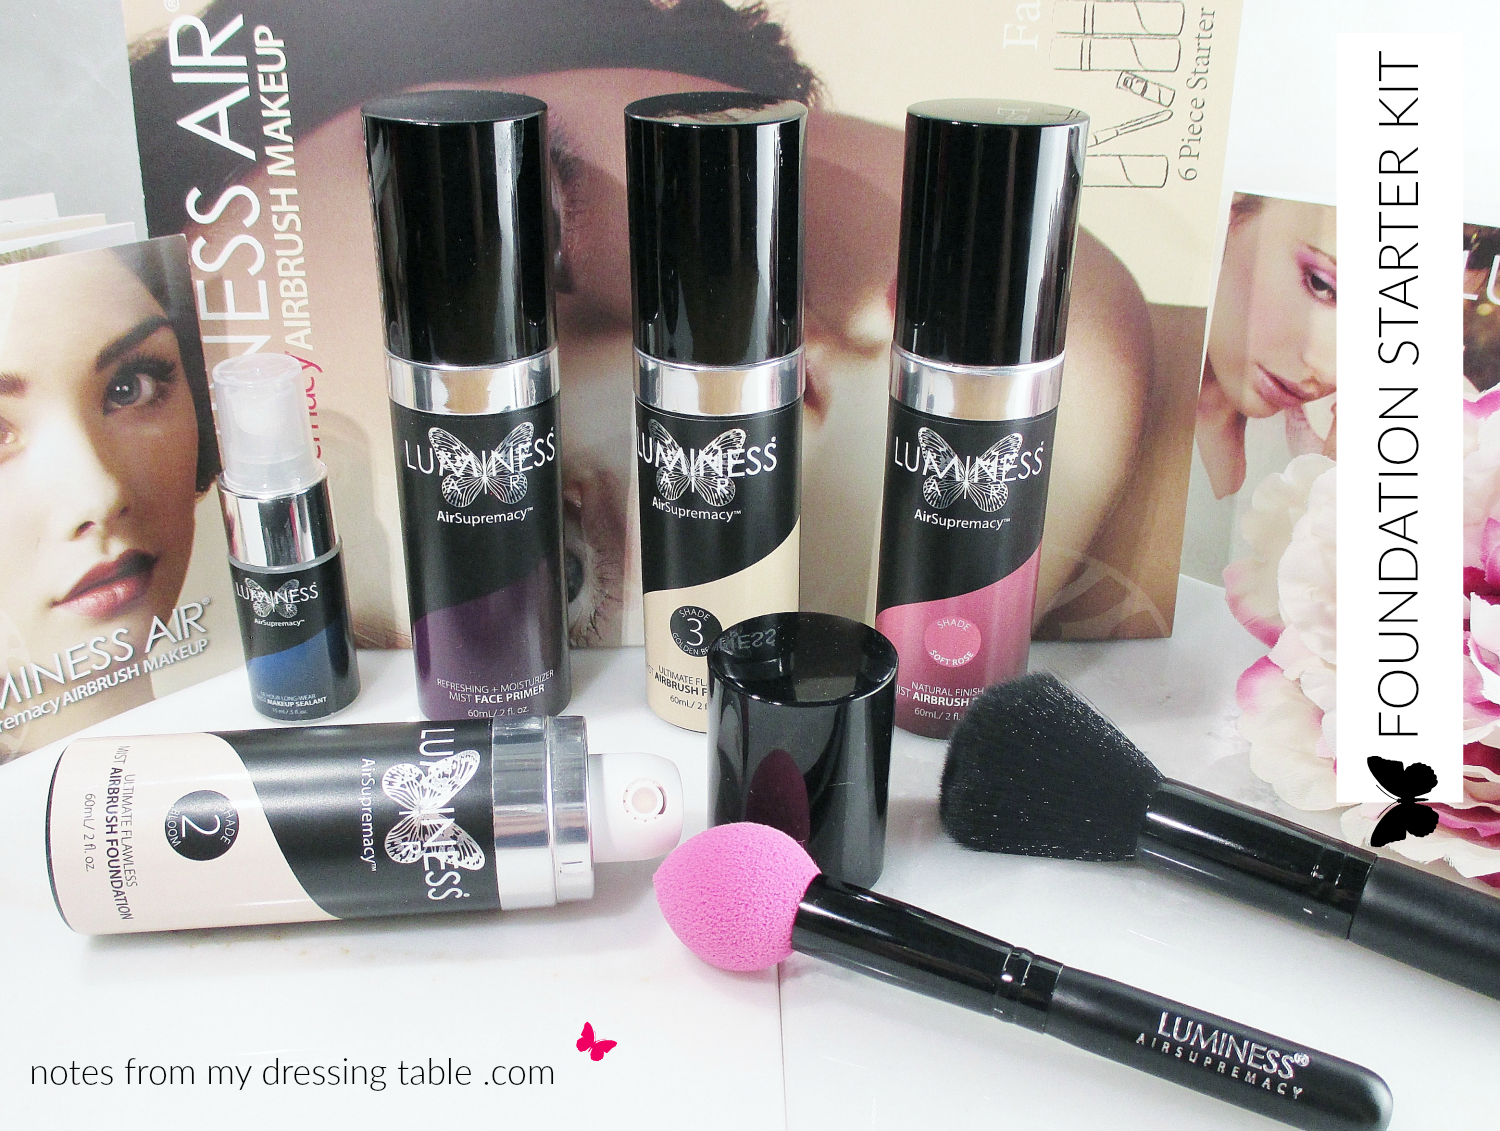 Luminess Air Air Supremacy Airbrush Makeup (With images